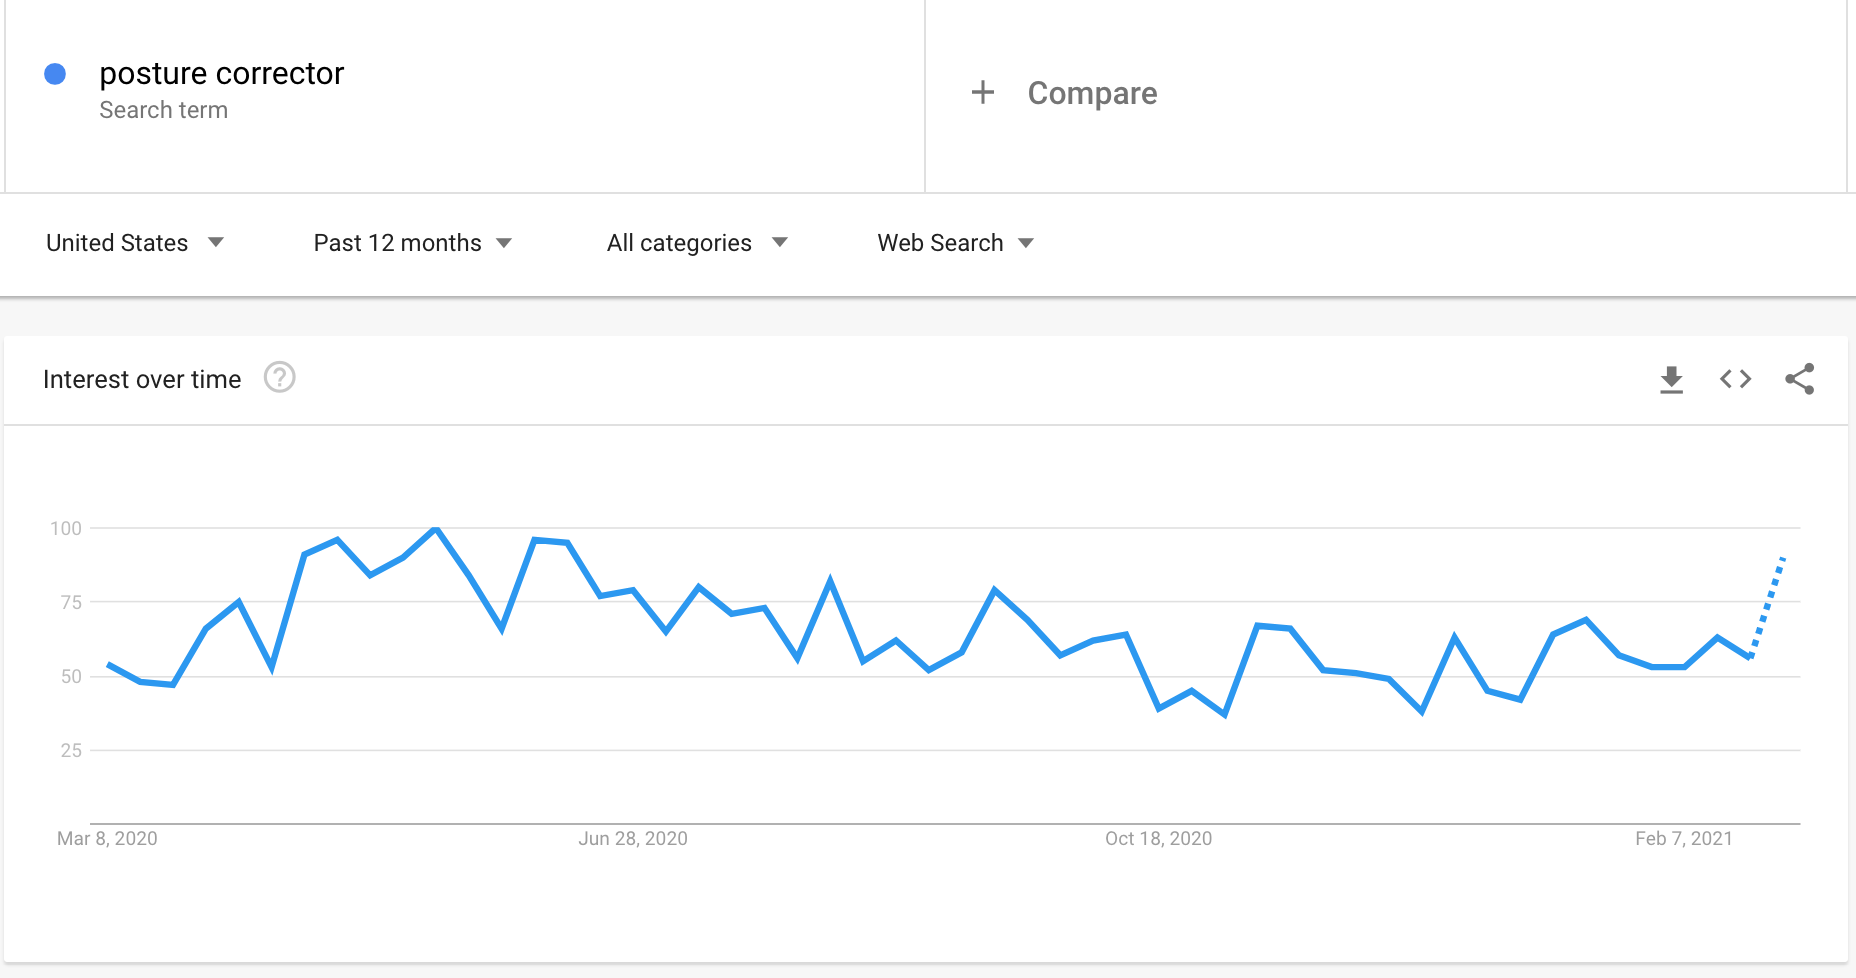 Google Trends graph showing the interest in posture correctors